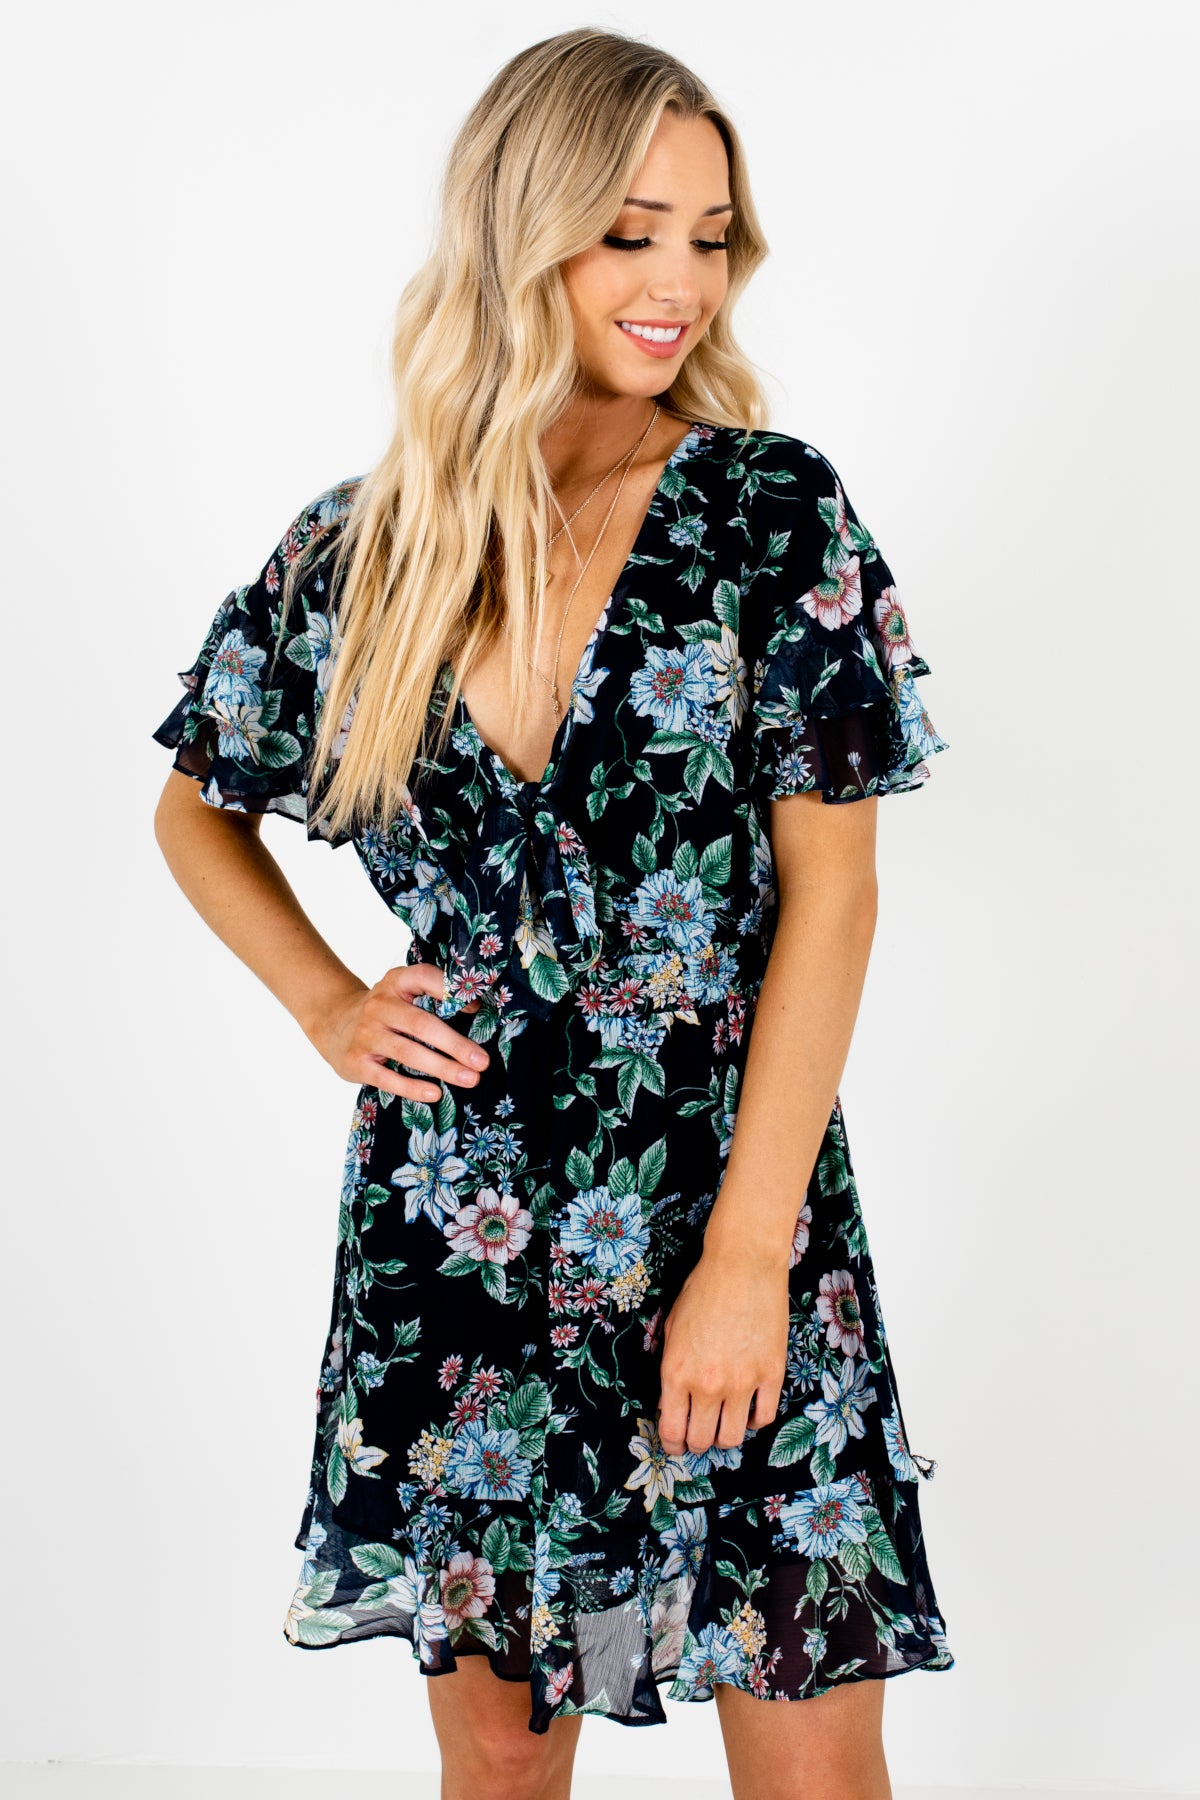 Navy Blue Multicolored Floral Print Mini Dresses with Tie-Front Cutout Detail